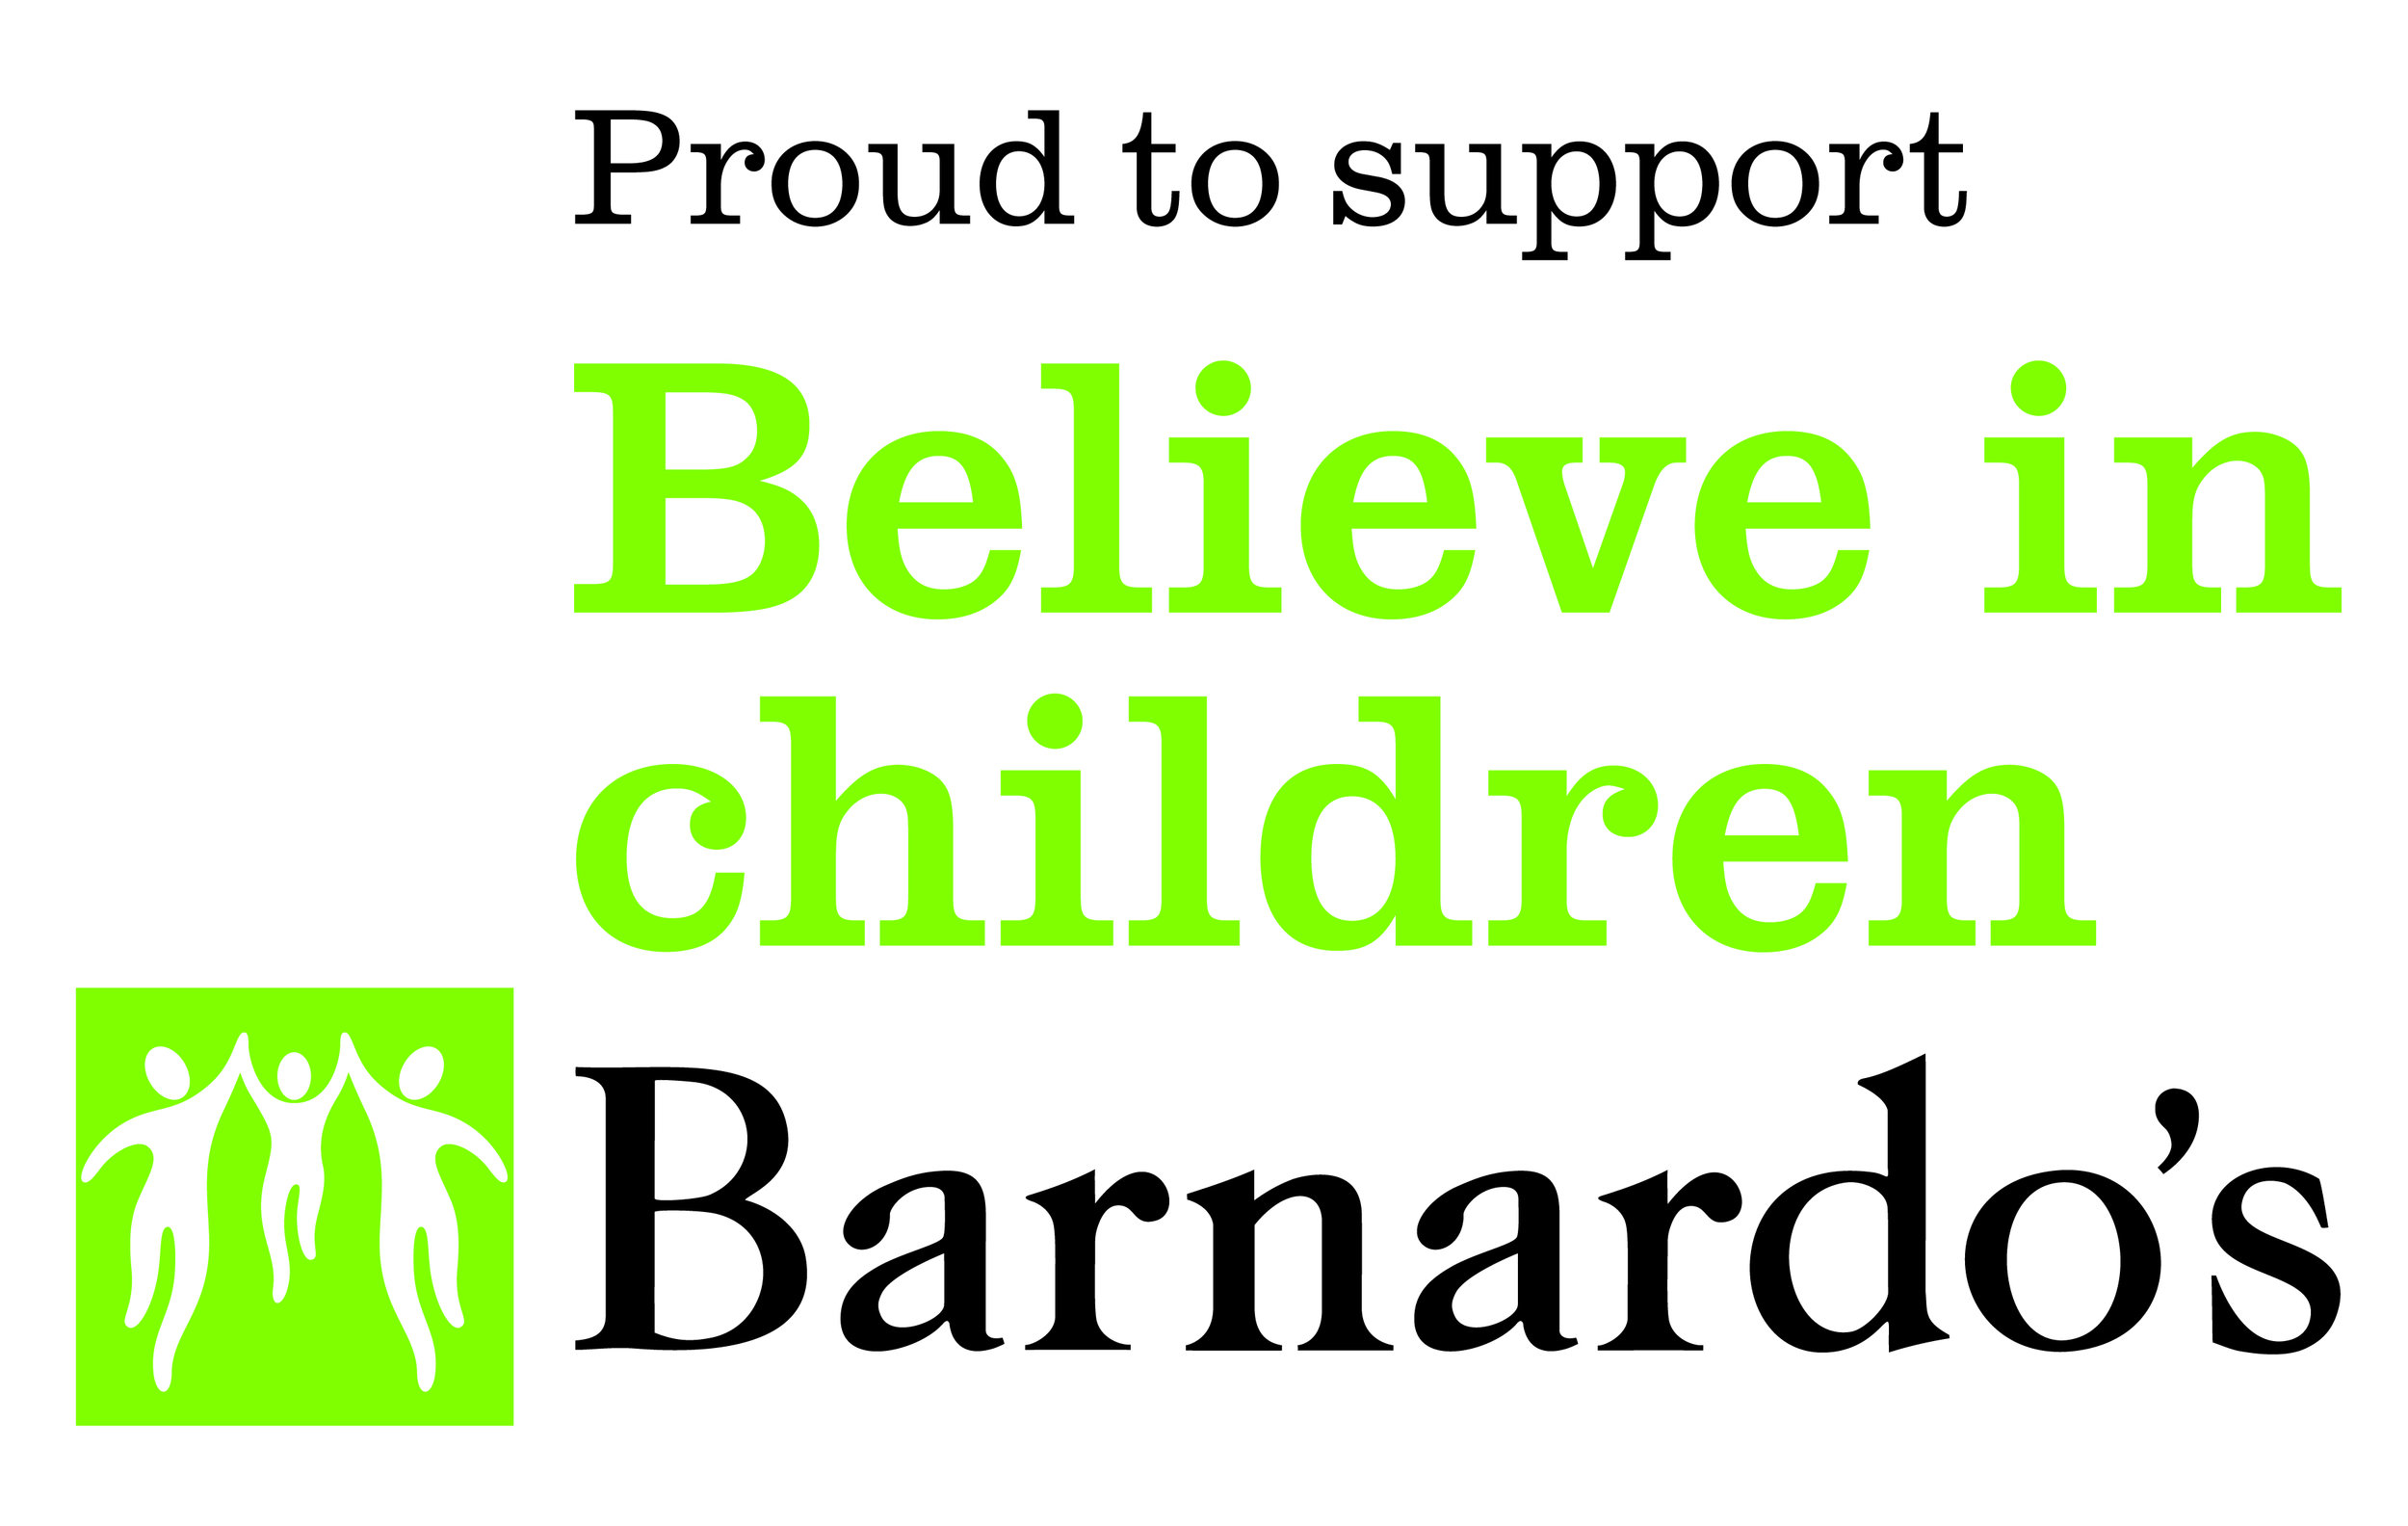 visit the barnardo's stall - Barnardo's protects supports and nurtures the UK's most vulnerable children and young people - transforming children's lives for over 150 years.As the UK's leading children's charity, they work directly with 301,100 children, young people, parents and carers, running over 1,000 vital services across the UK.They build stronger families, safer childhoods and positive futures. They influence the government on issues affecting children and young people and raise public awareness of these issues.They believe in children – no matter who they are, what they have done or what they have been through